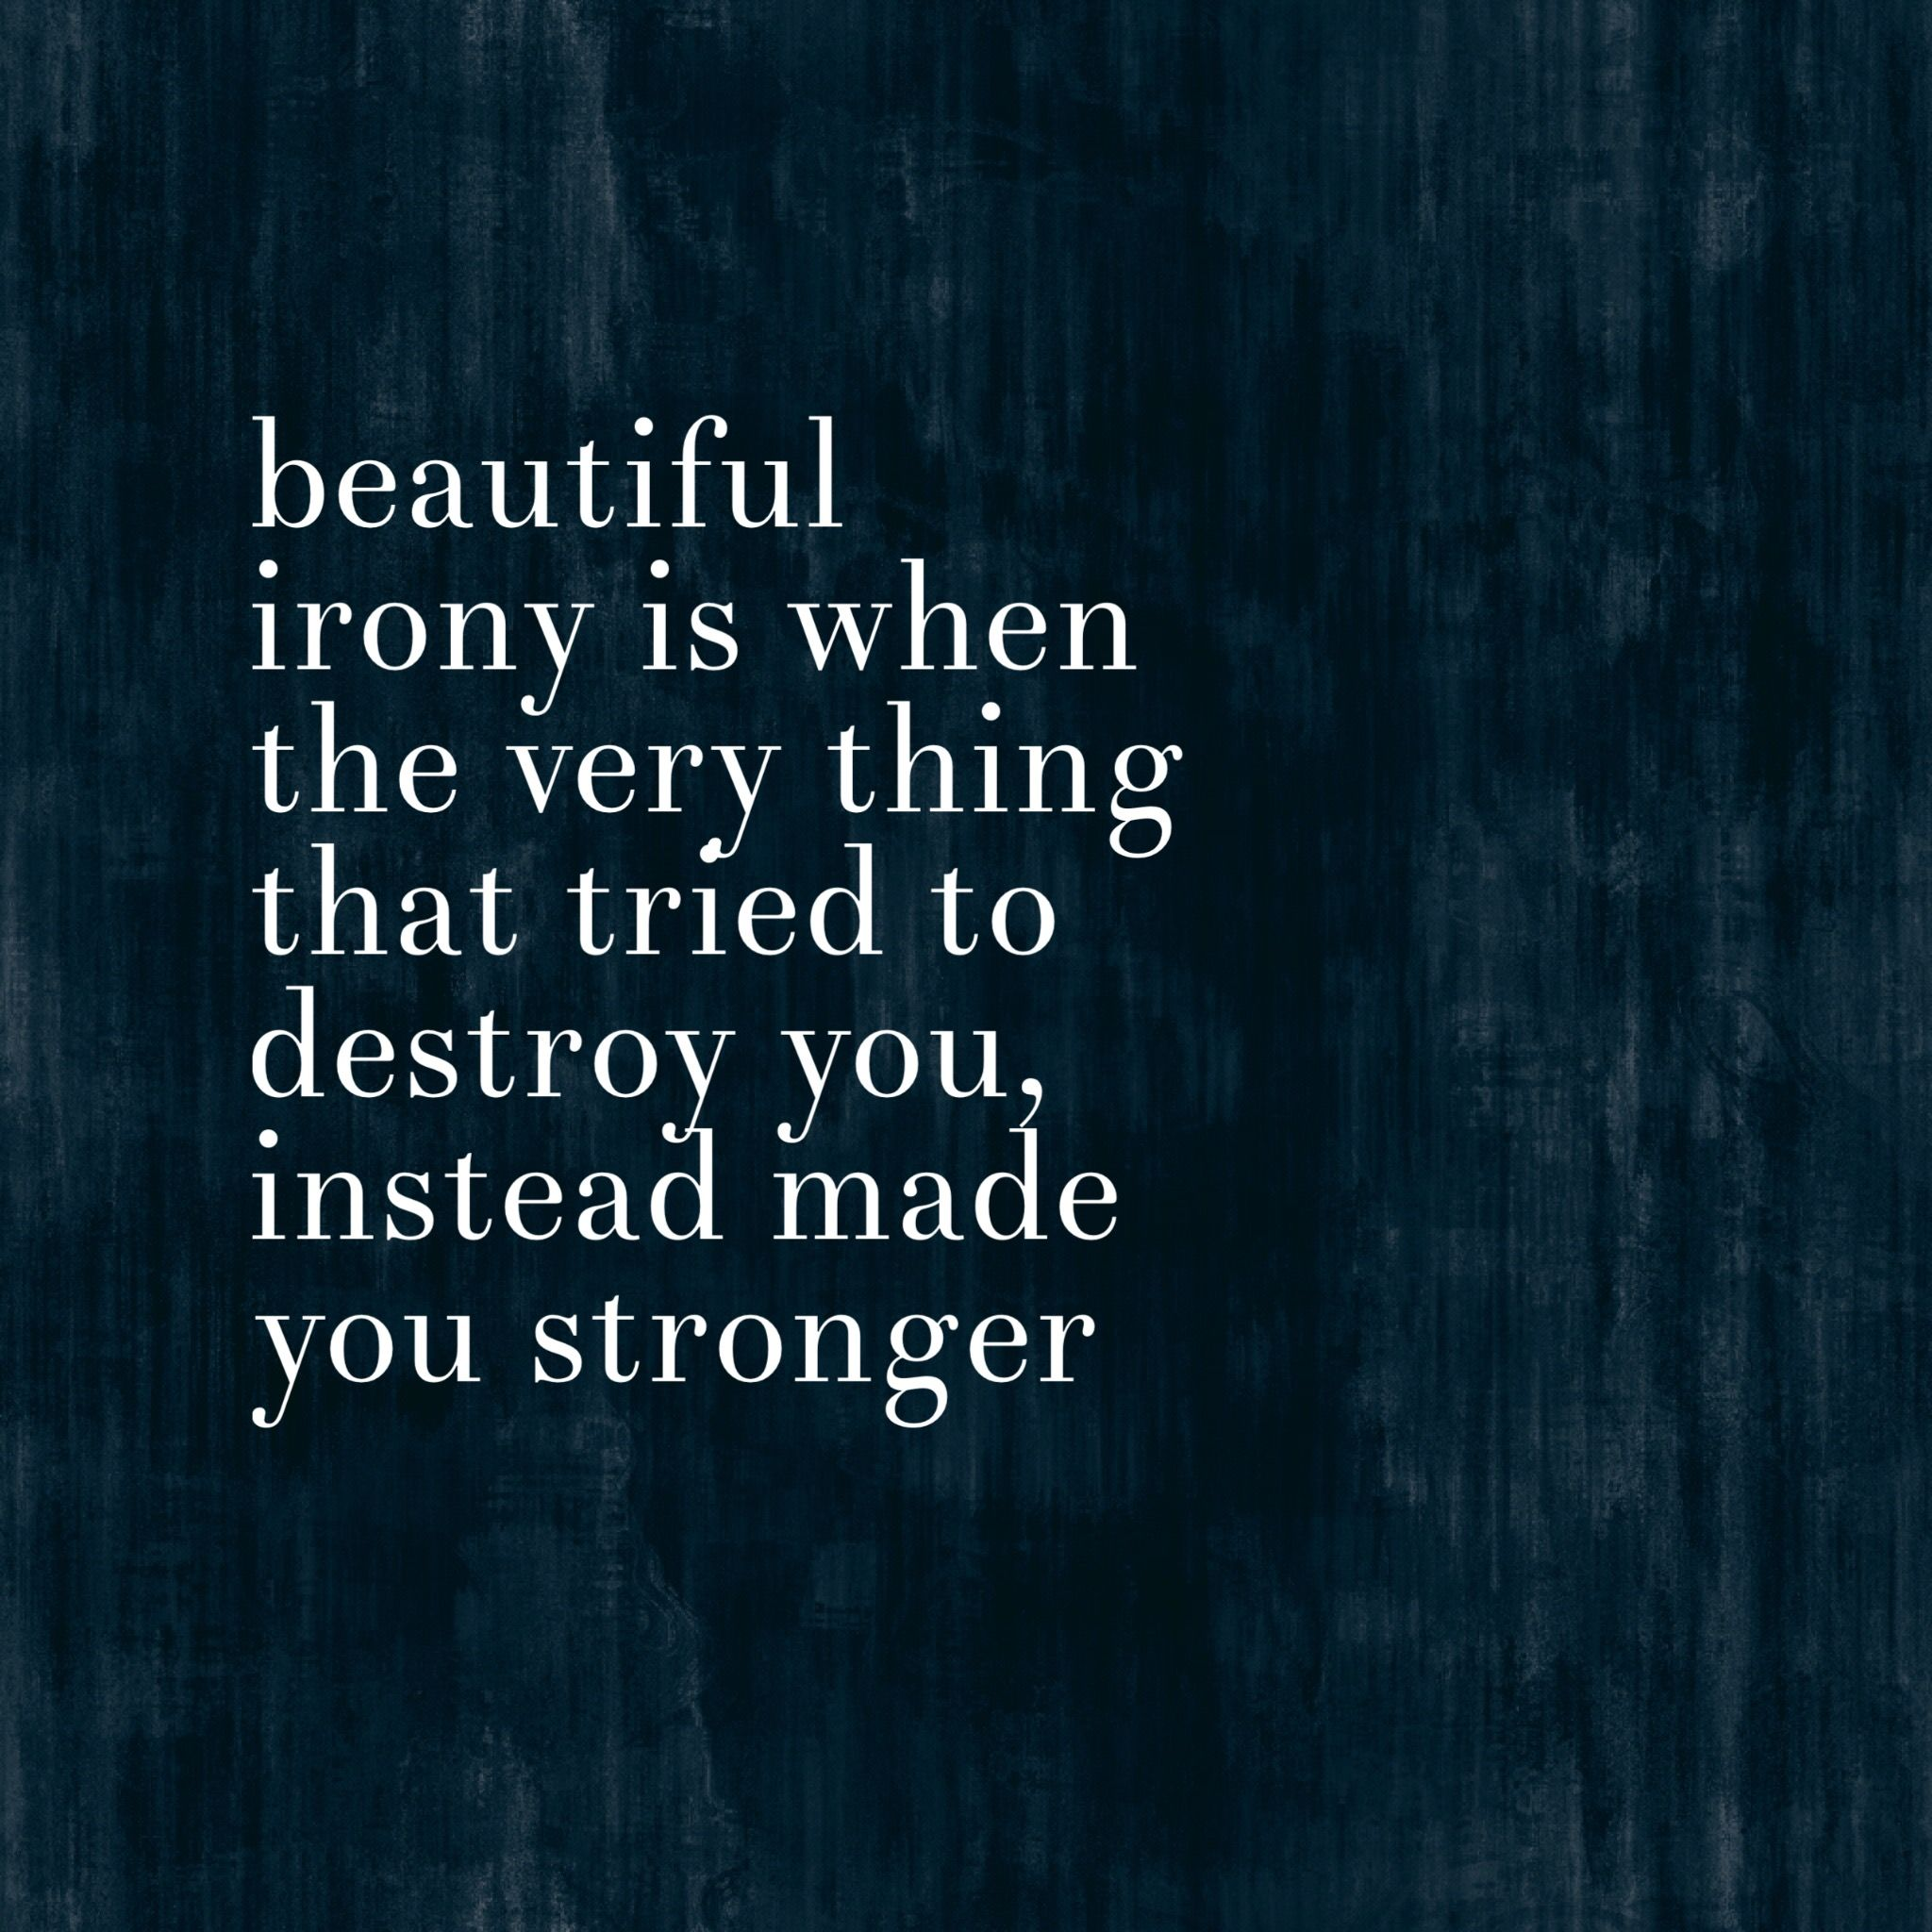 Stronger Quotes Beautiful Ironytruth Quotesstrongerquotes About Strength